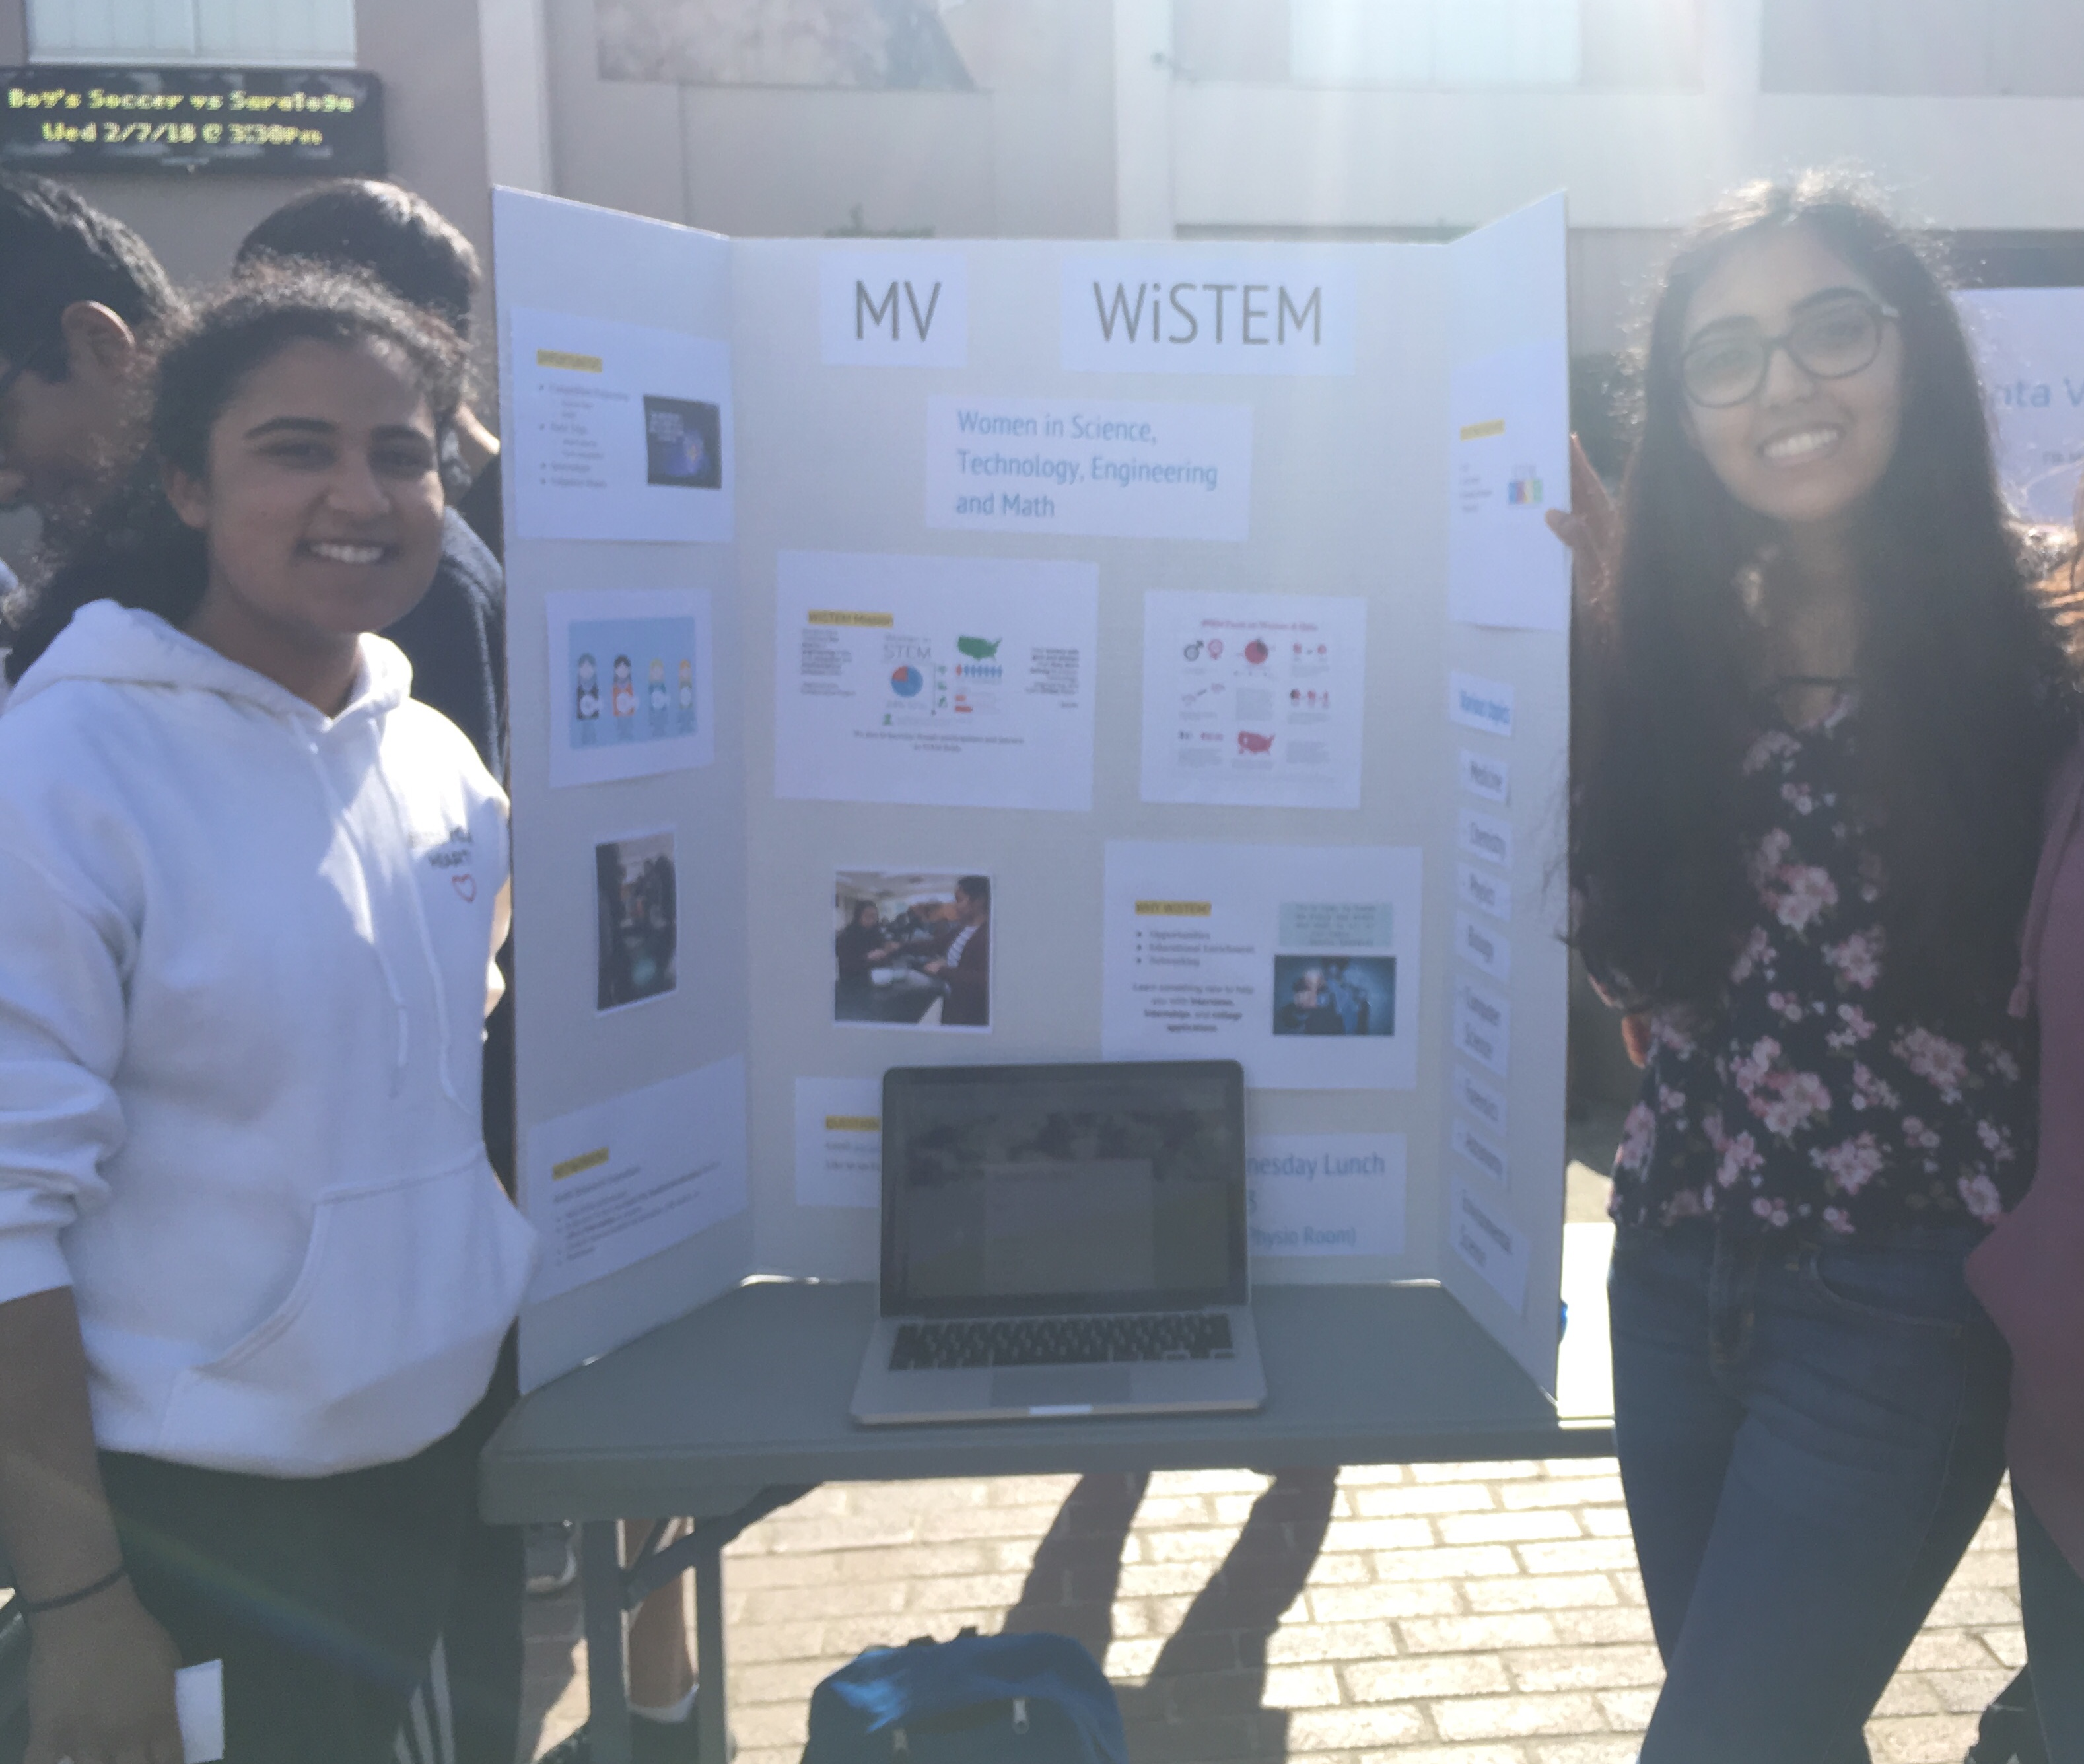 Seniors president Rakhi Banerjee and vice president Kriti Lalwani promote WiSTEM on club information day. They answered questions incoming club members had and encouraged them to sign up.